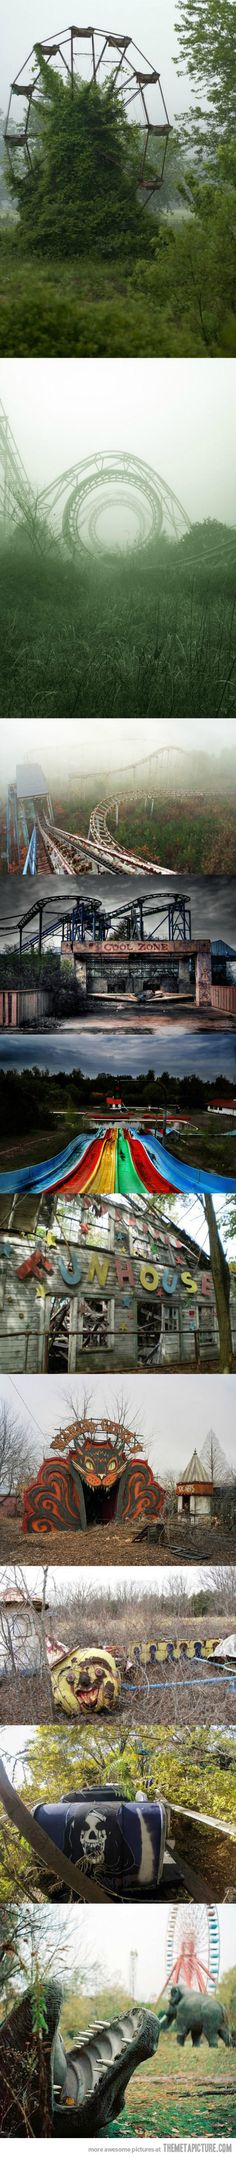 Creepy Photos of Abandoned Amusement Parks. Creepy, but super cool...I'm just weird like that